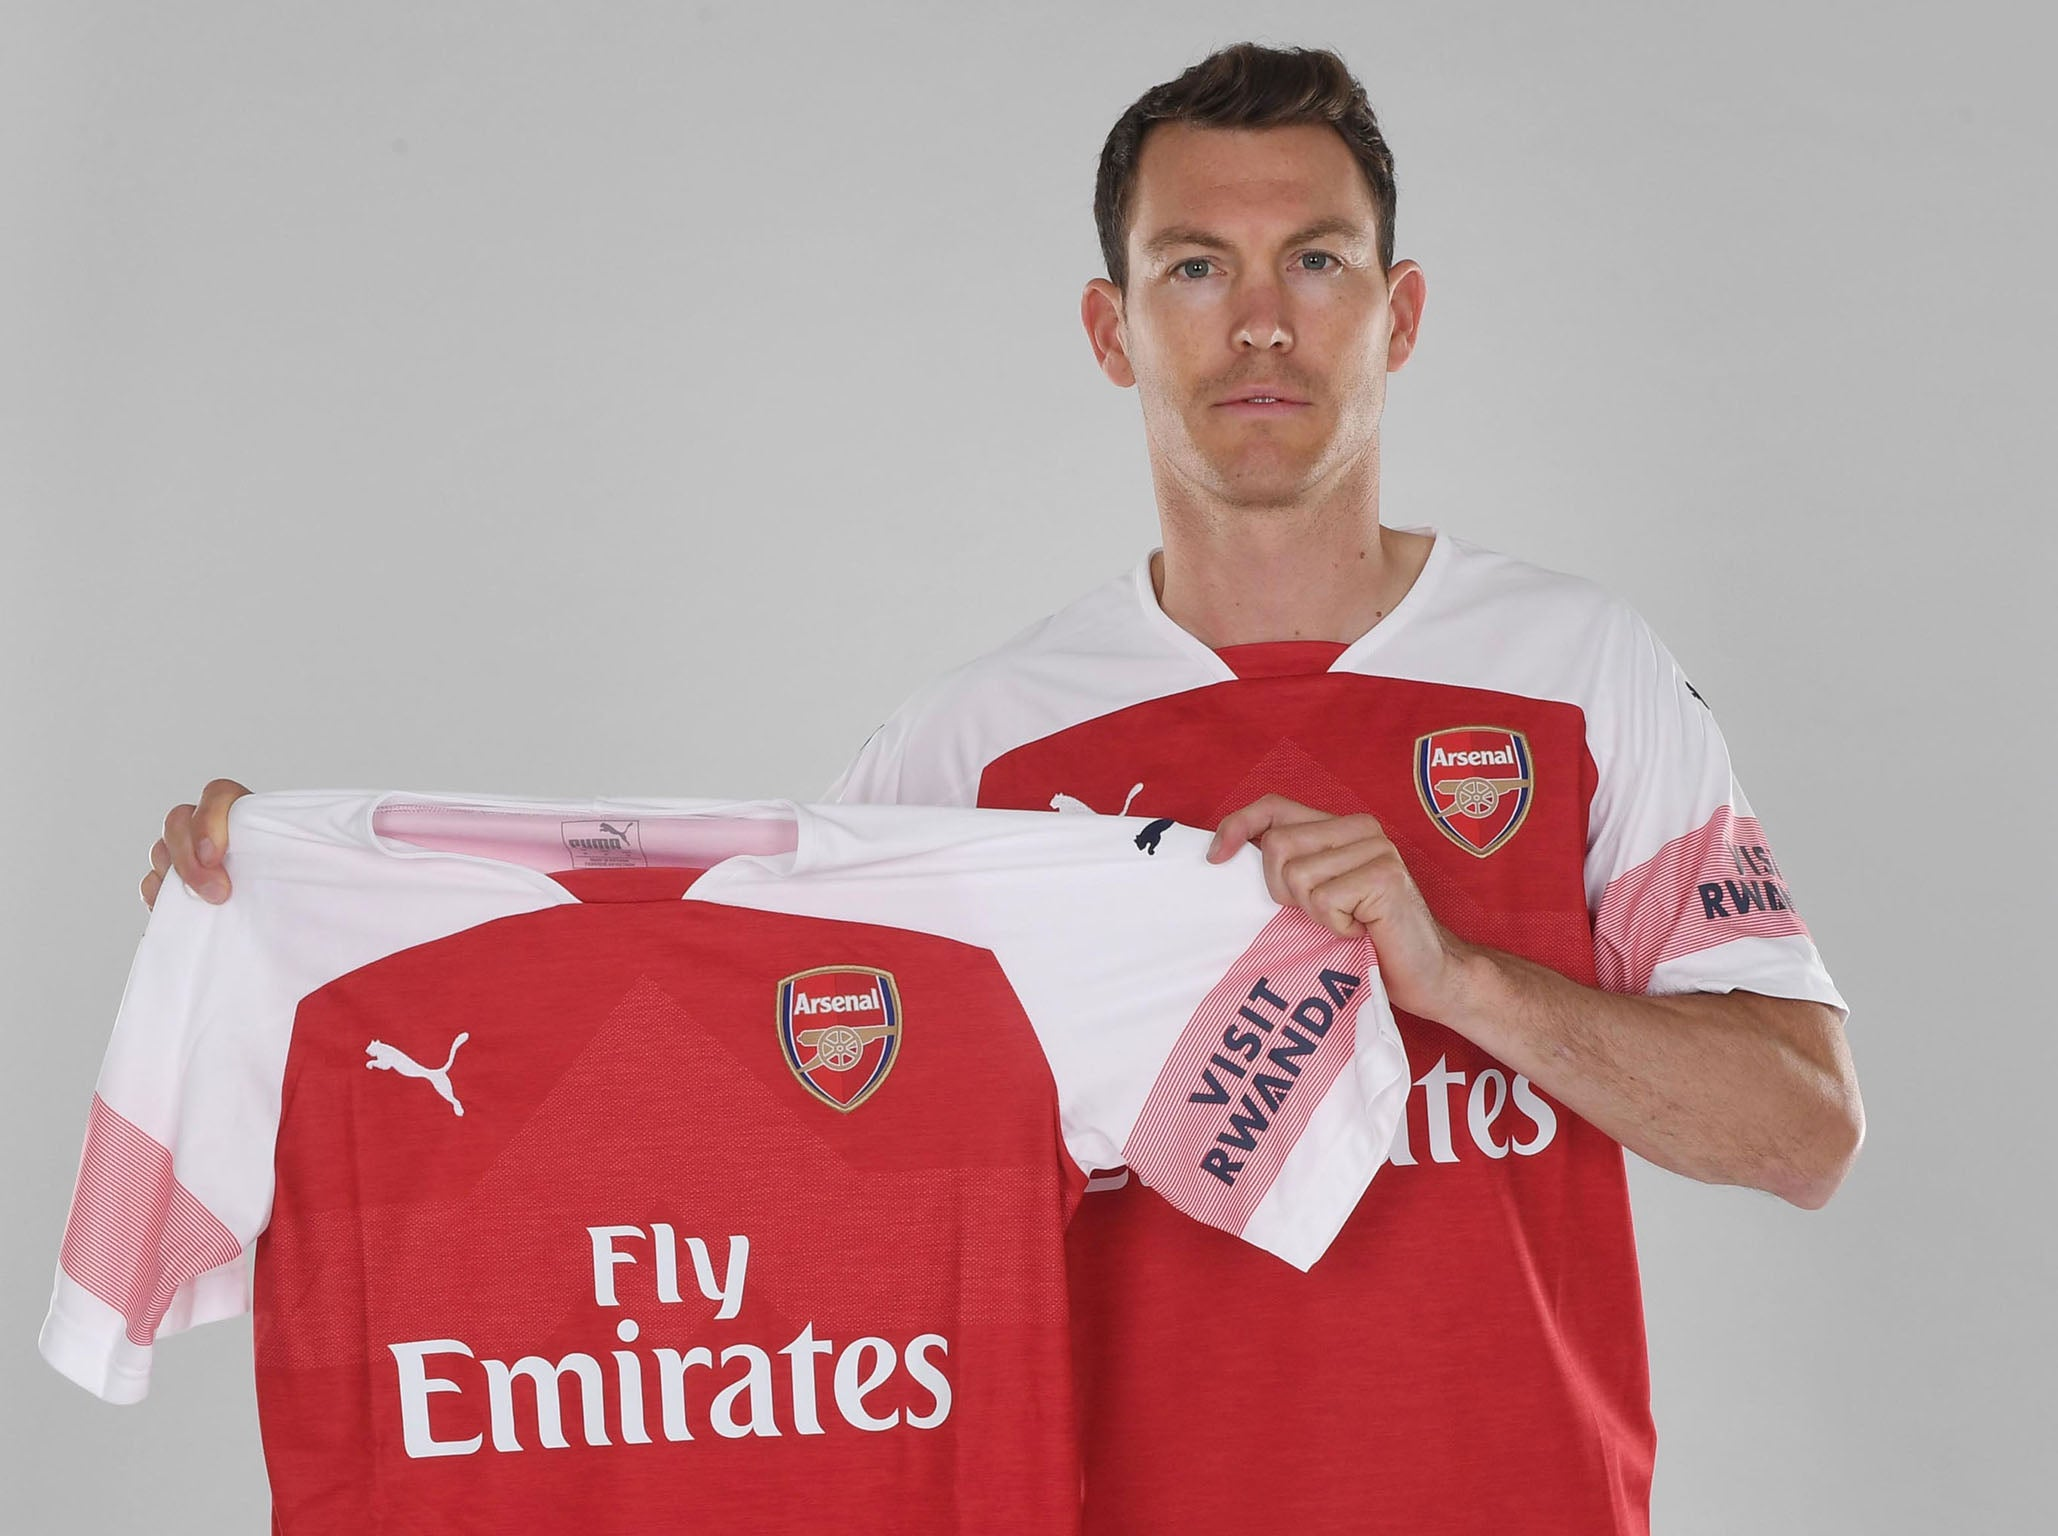 fbff9c981 Stephan Lichtsteiner's shirt number revealed after Arsenal transfer  confirmed | The Independent